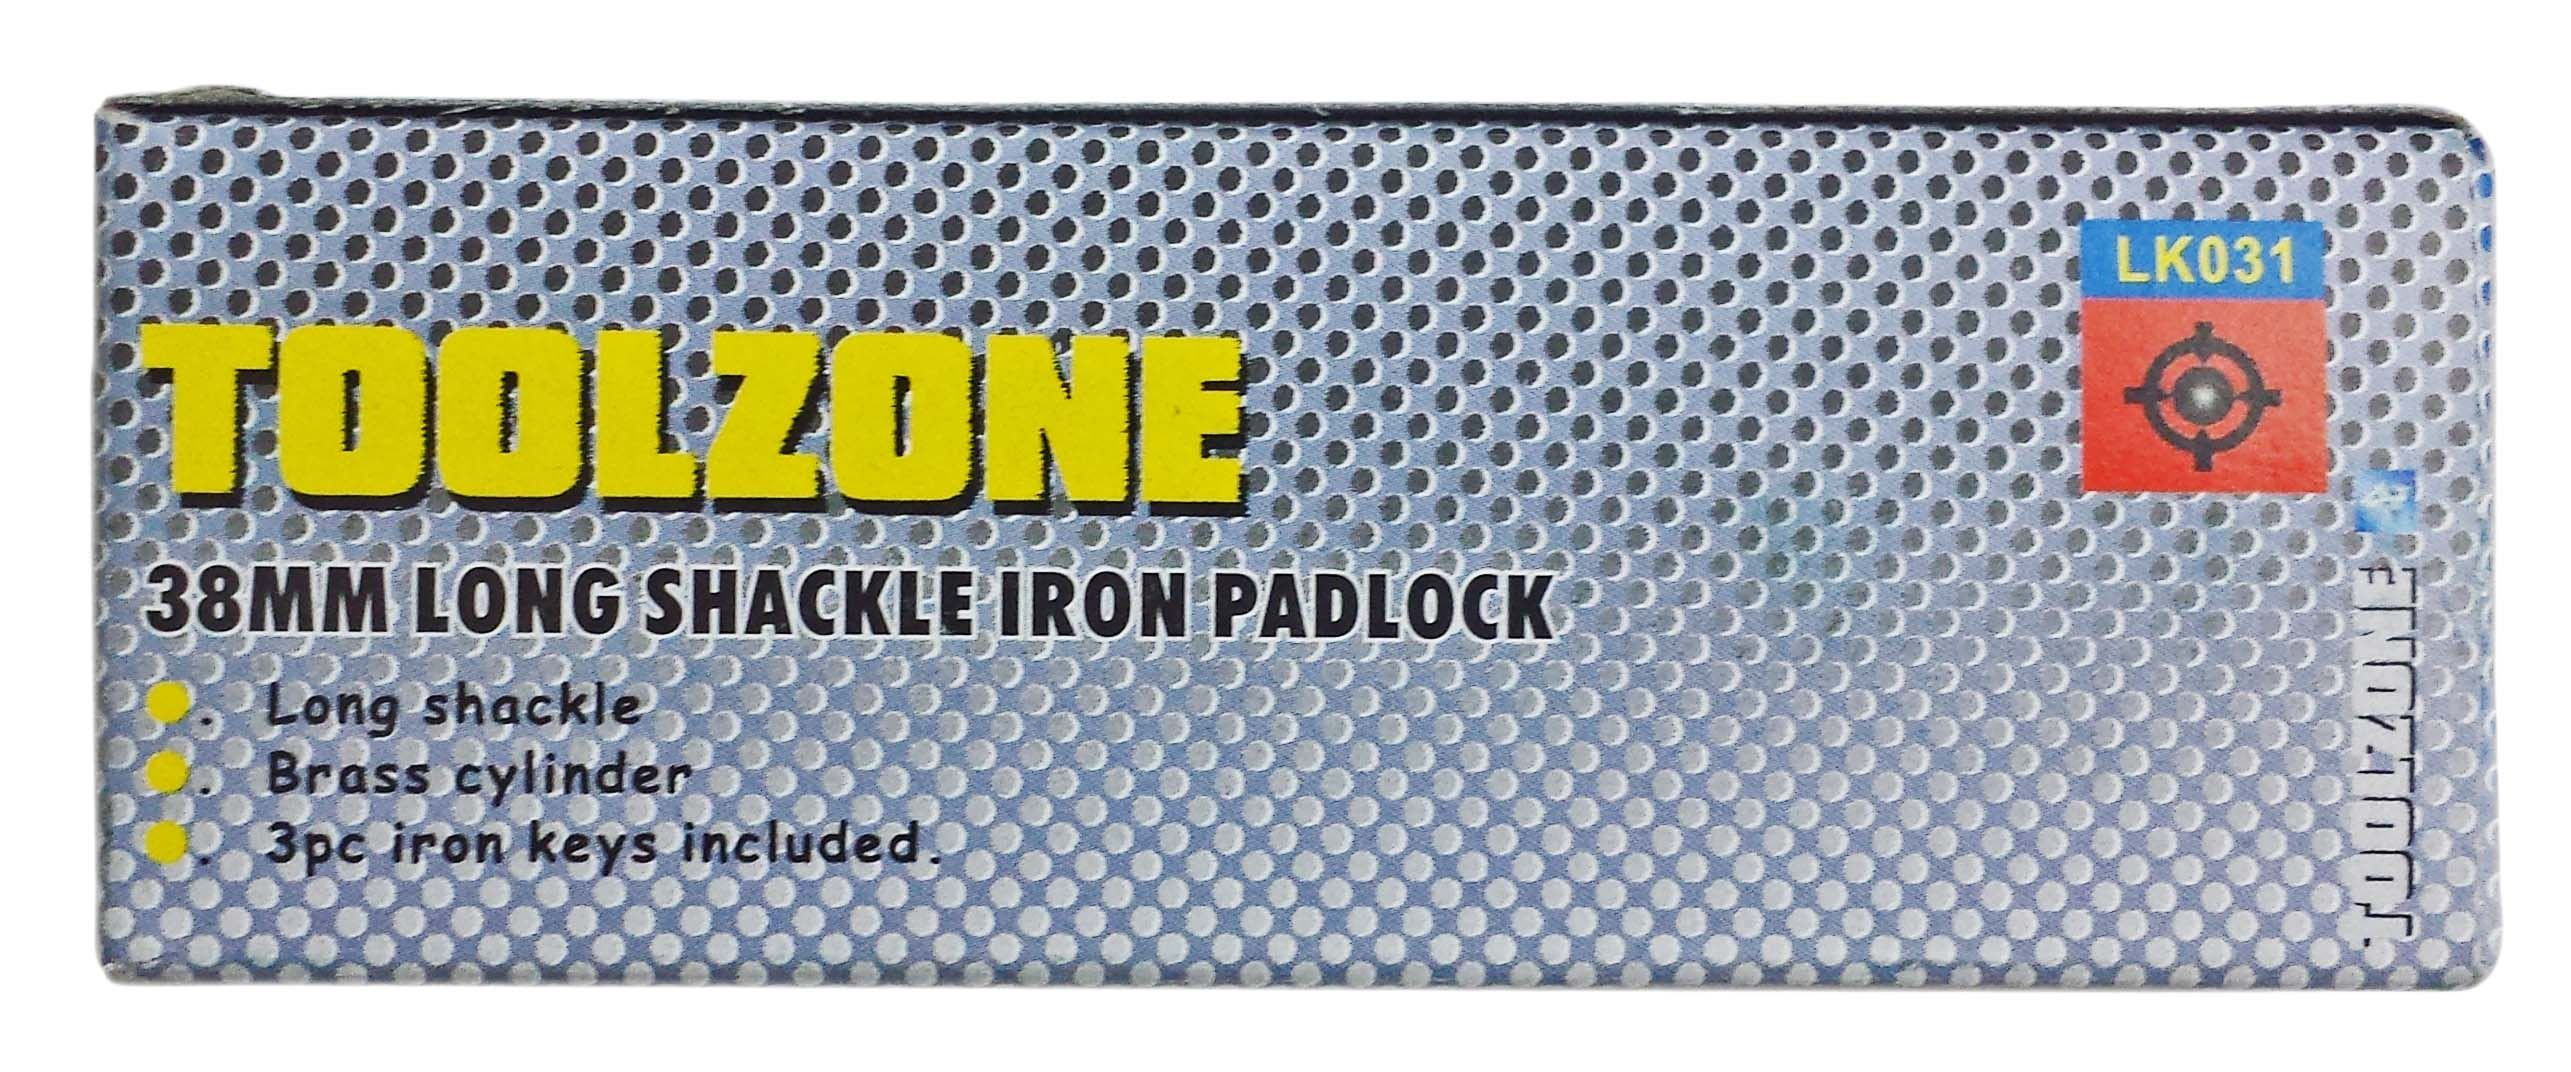 Toolzone 38Mm Long Shank Iron Padlock